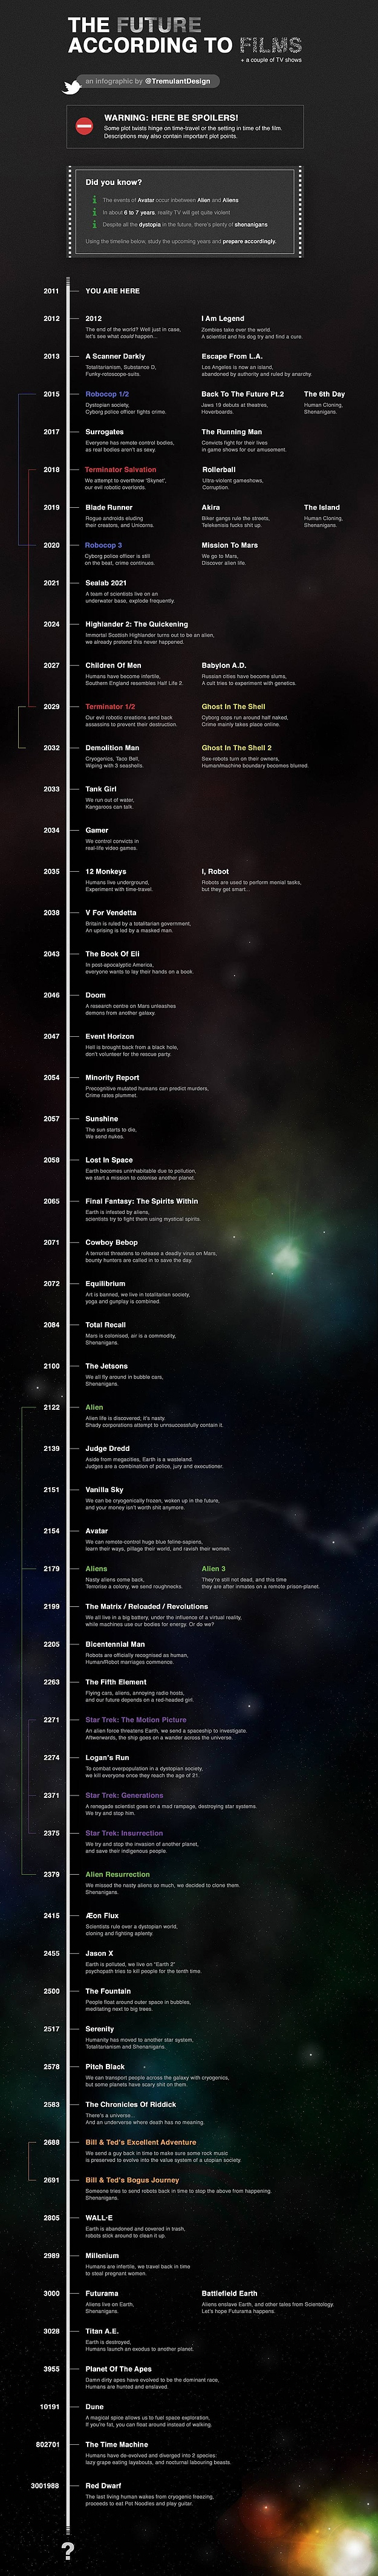 The Future According To Science Fiction Films [Infographic]